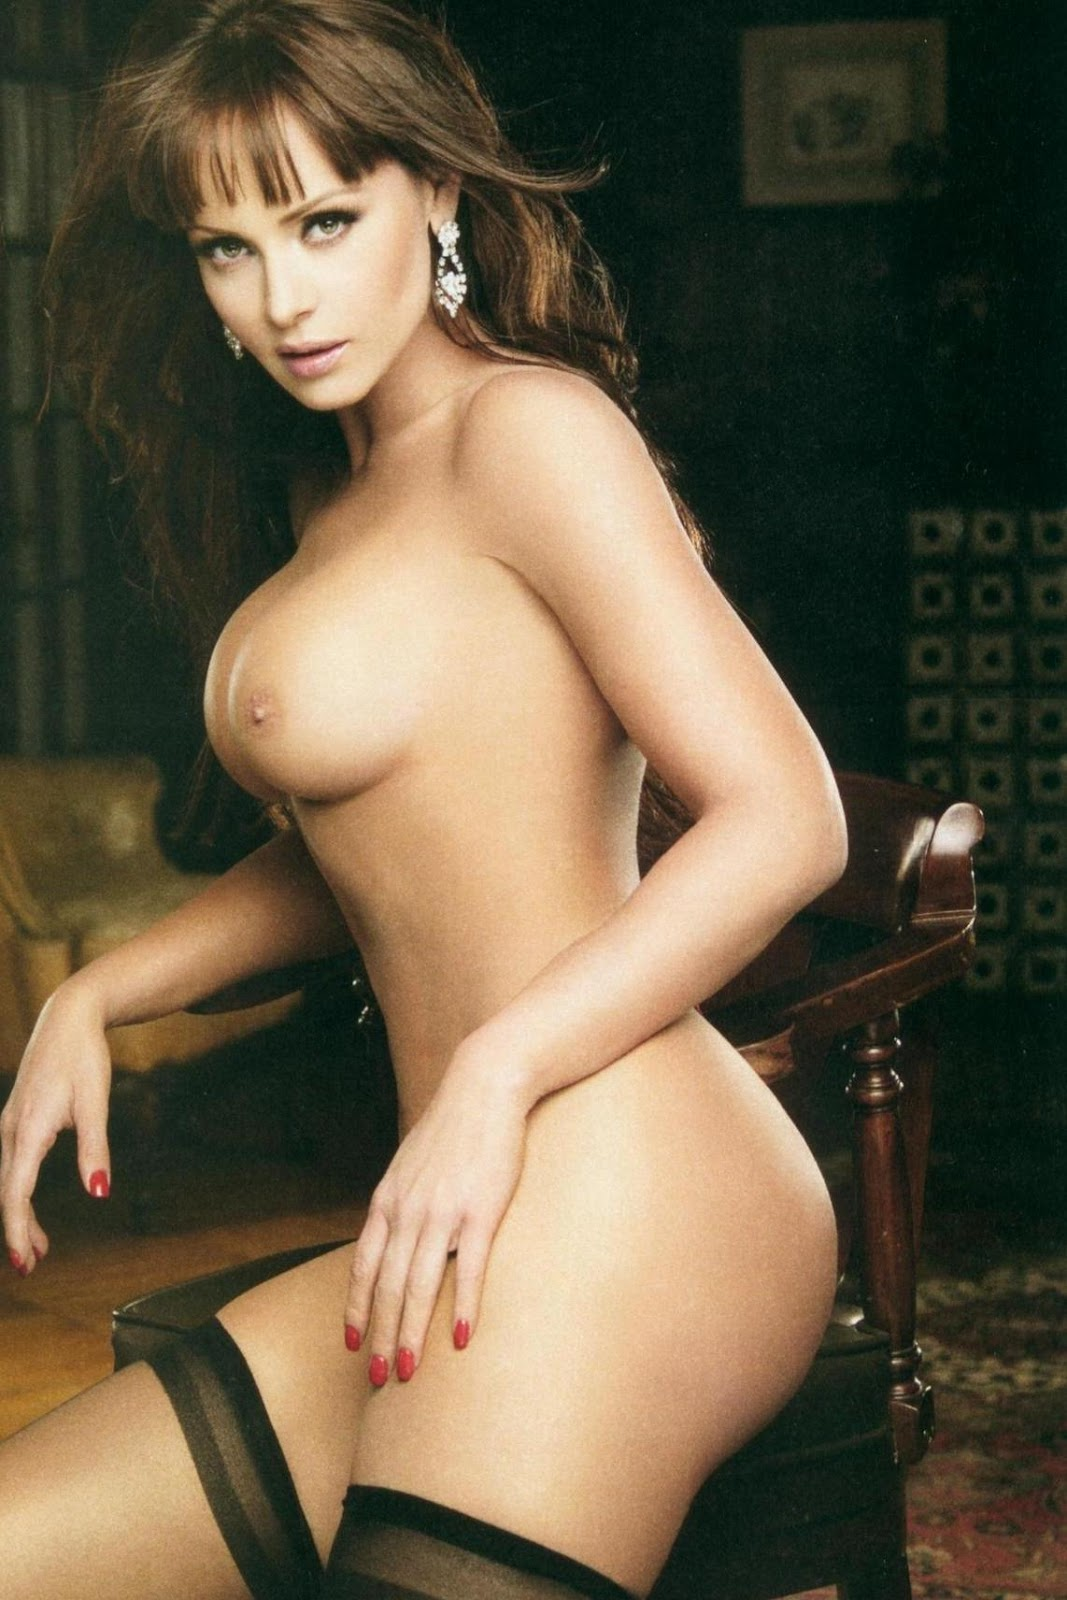 Ideal answer Kate del castillo nud